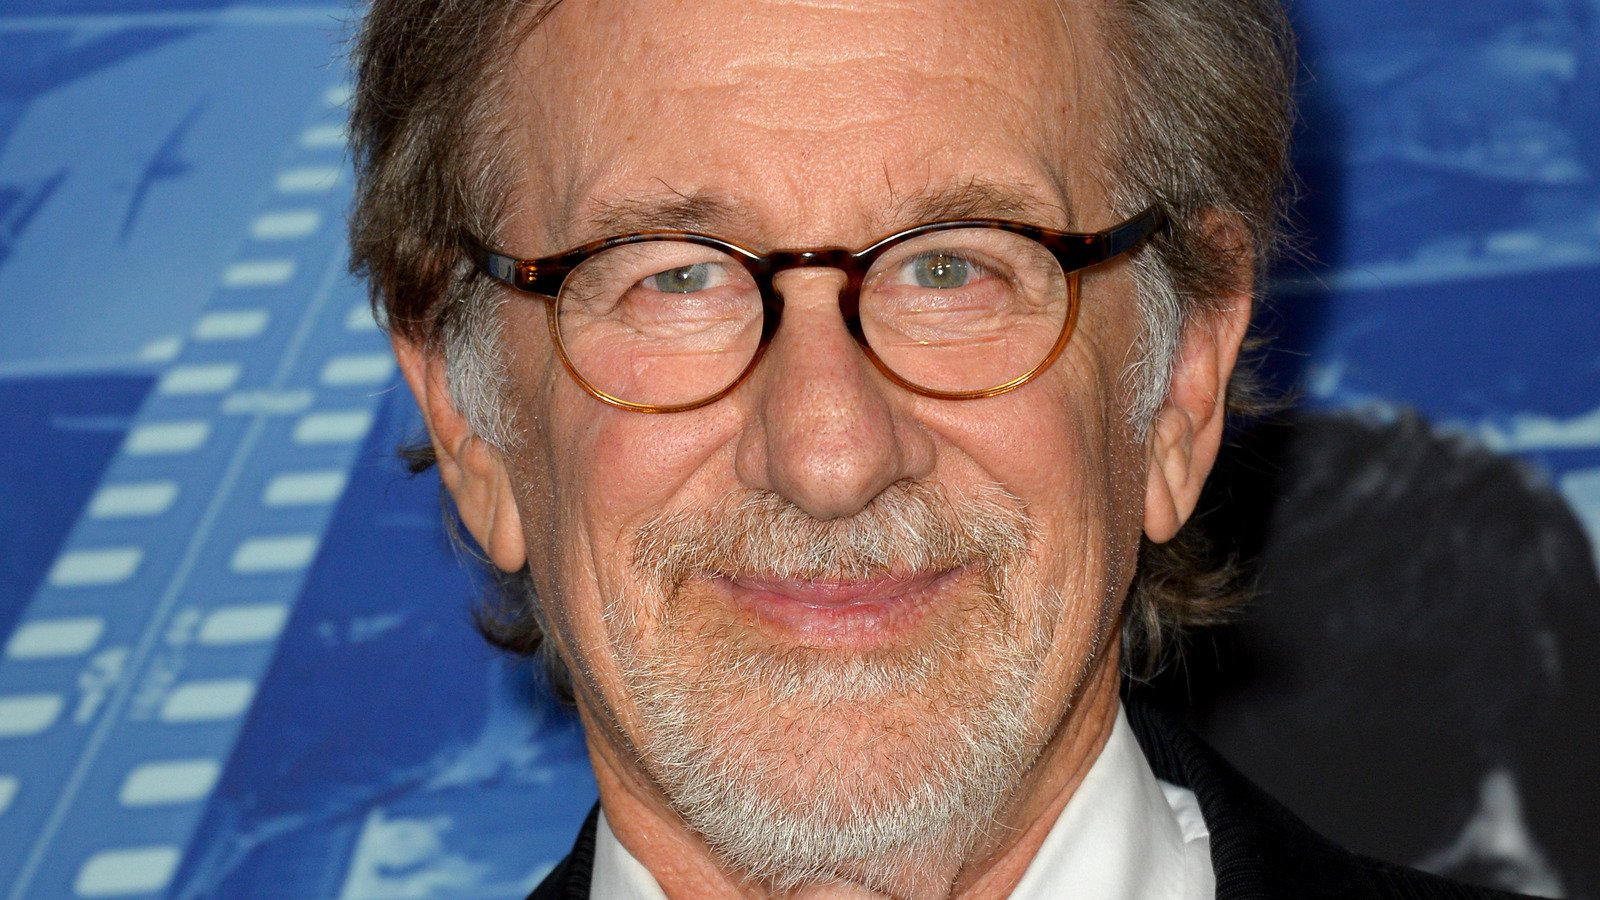 11 Spielberg Projects We Never Saw But Wish We Could've